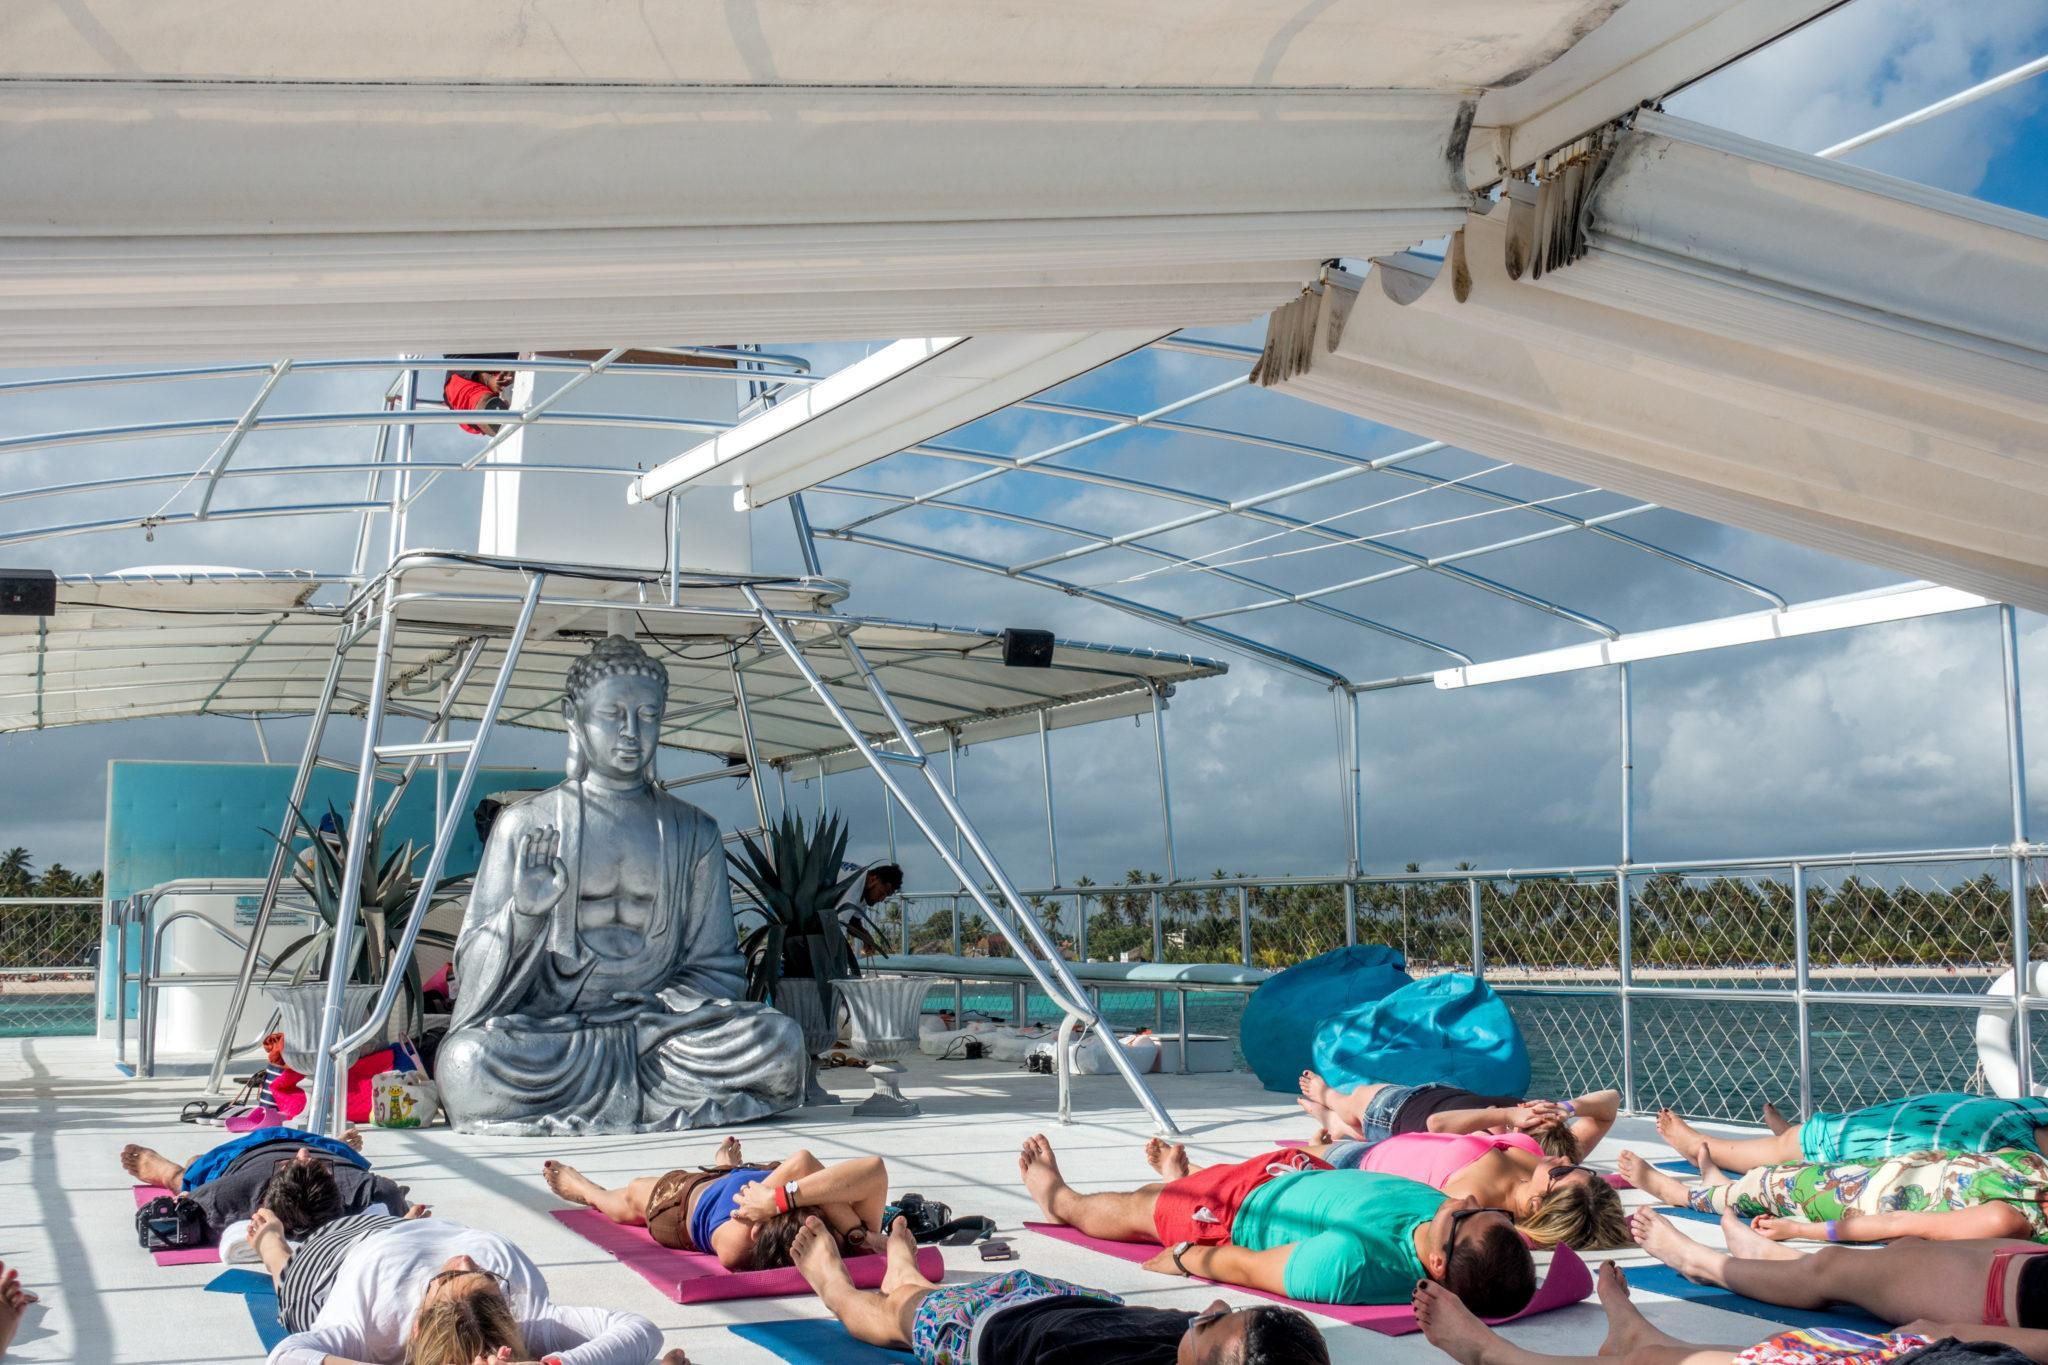 Yoga on a spa boat in the Caribbean Sea is one of the fun activities in Punta Cana